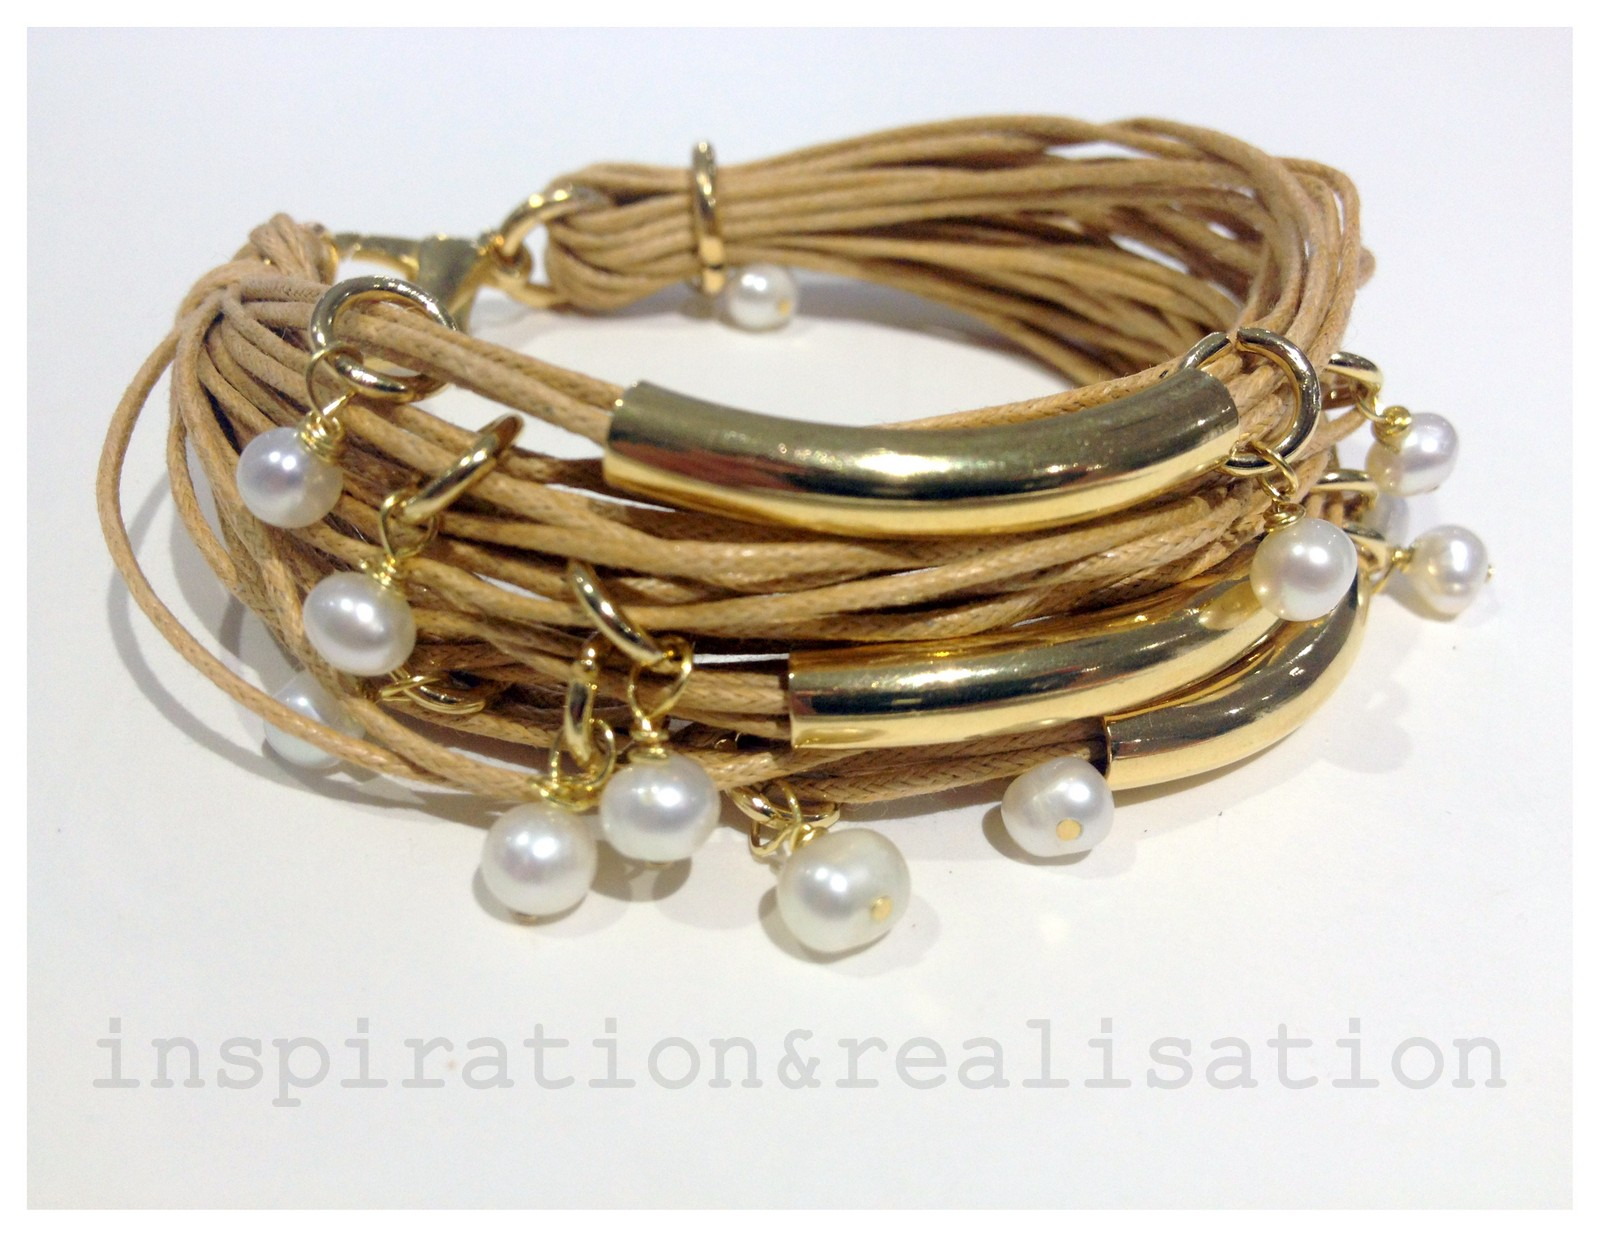 breathe front bracelet inspiration